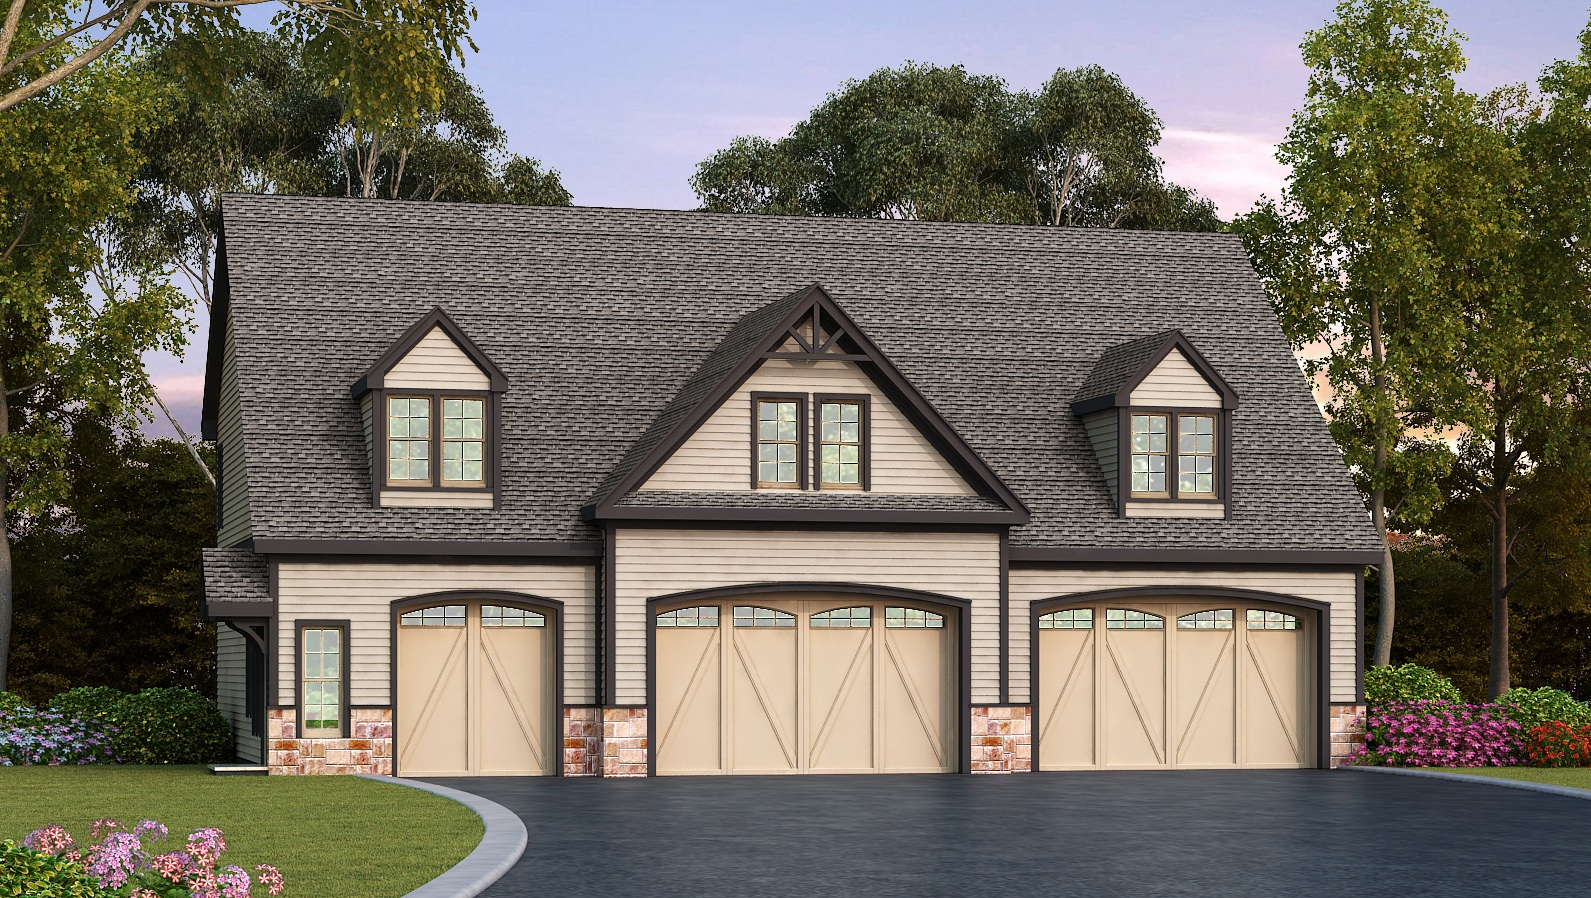 Residential 5 car garage plan 29870rl architectural for Garage workshop plans